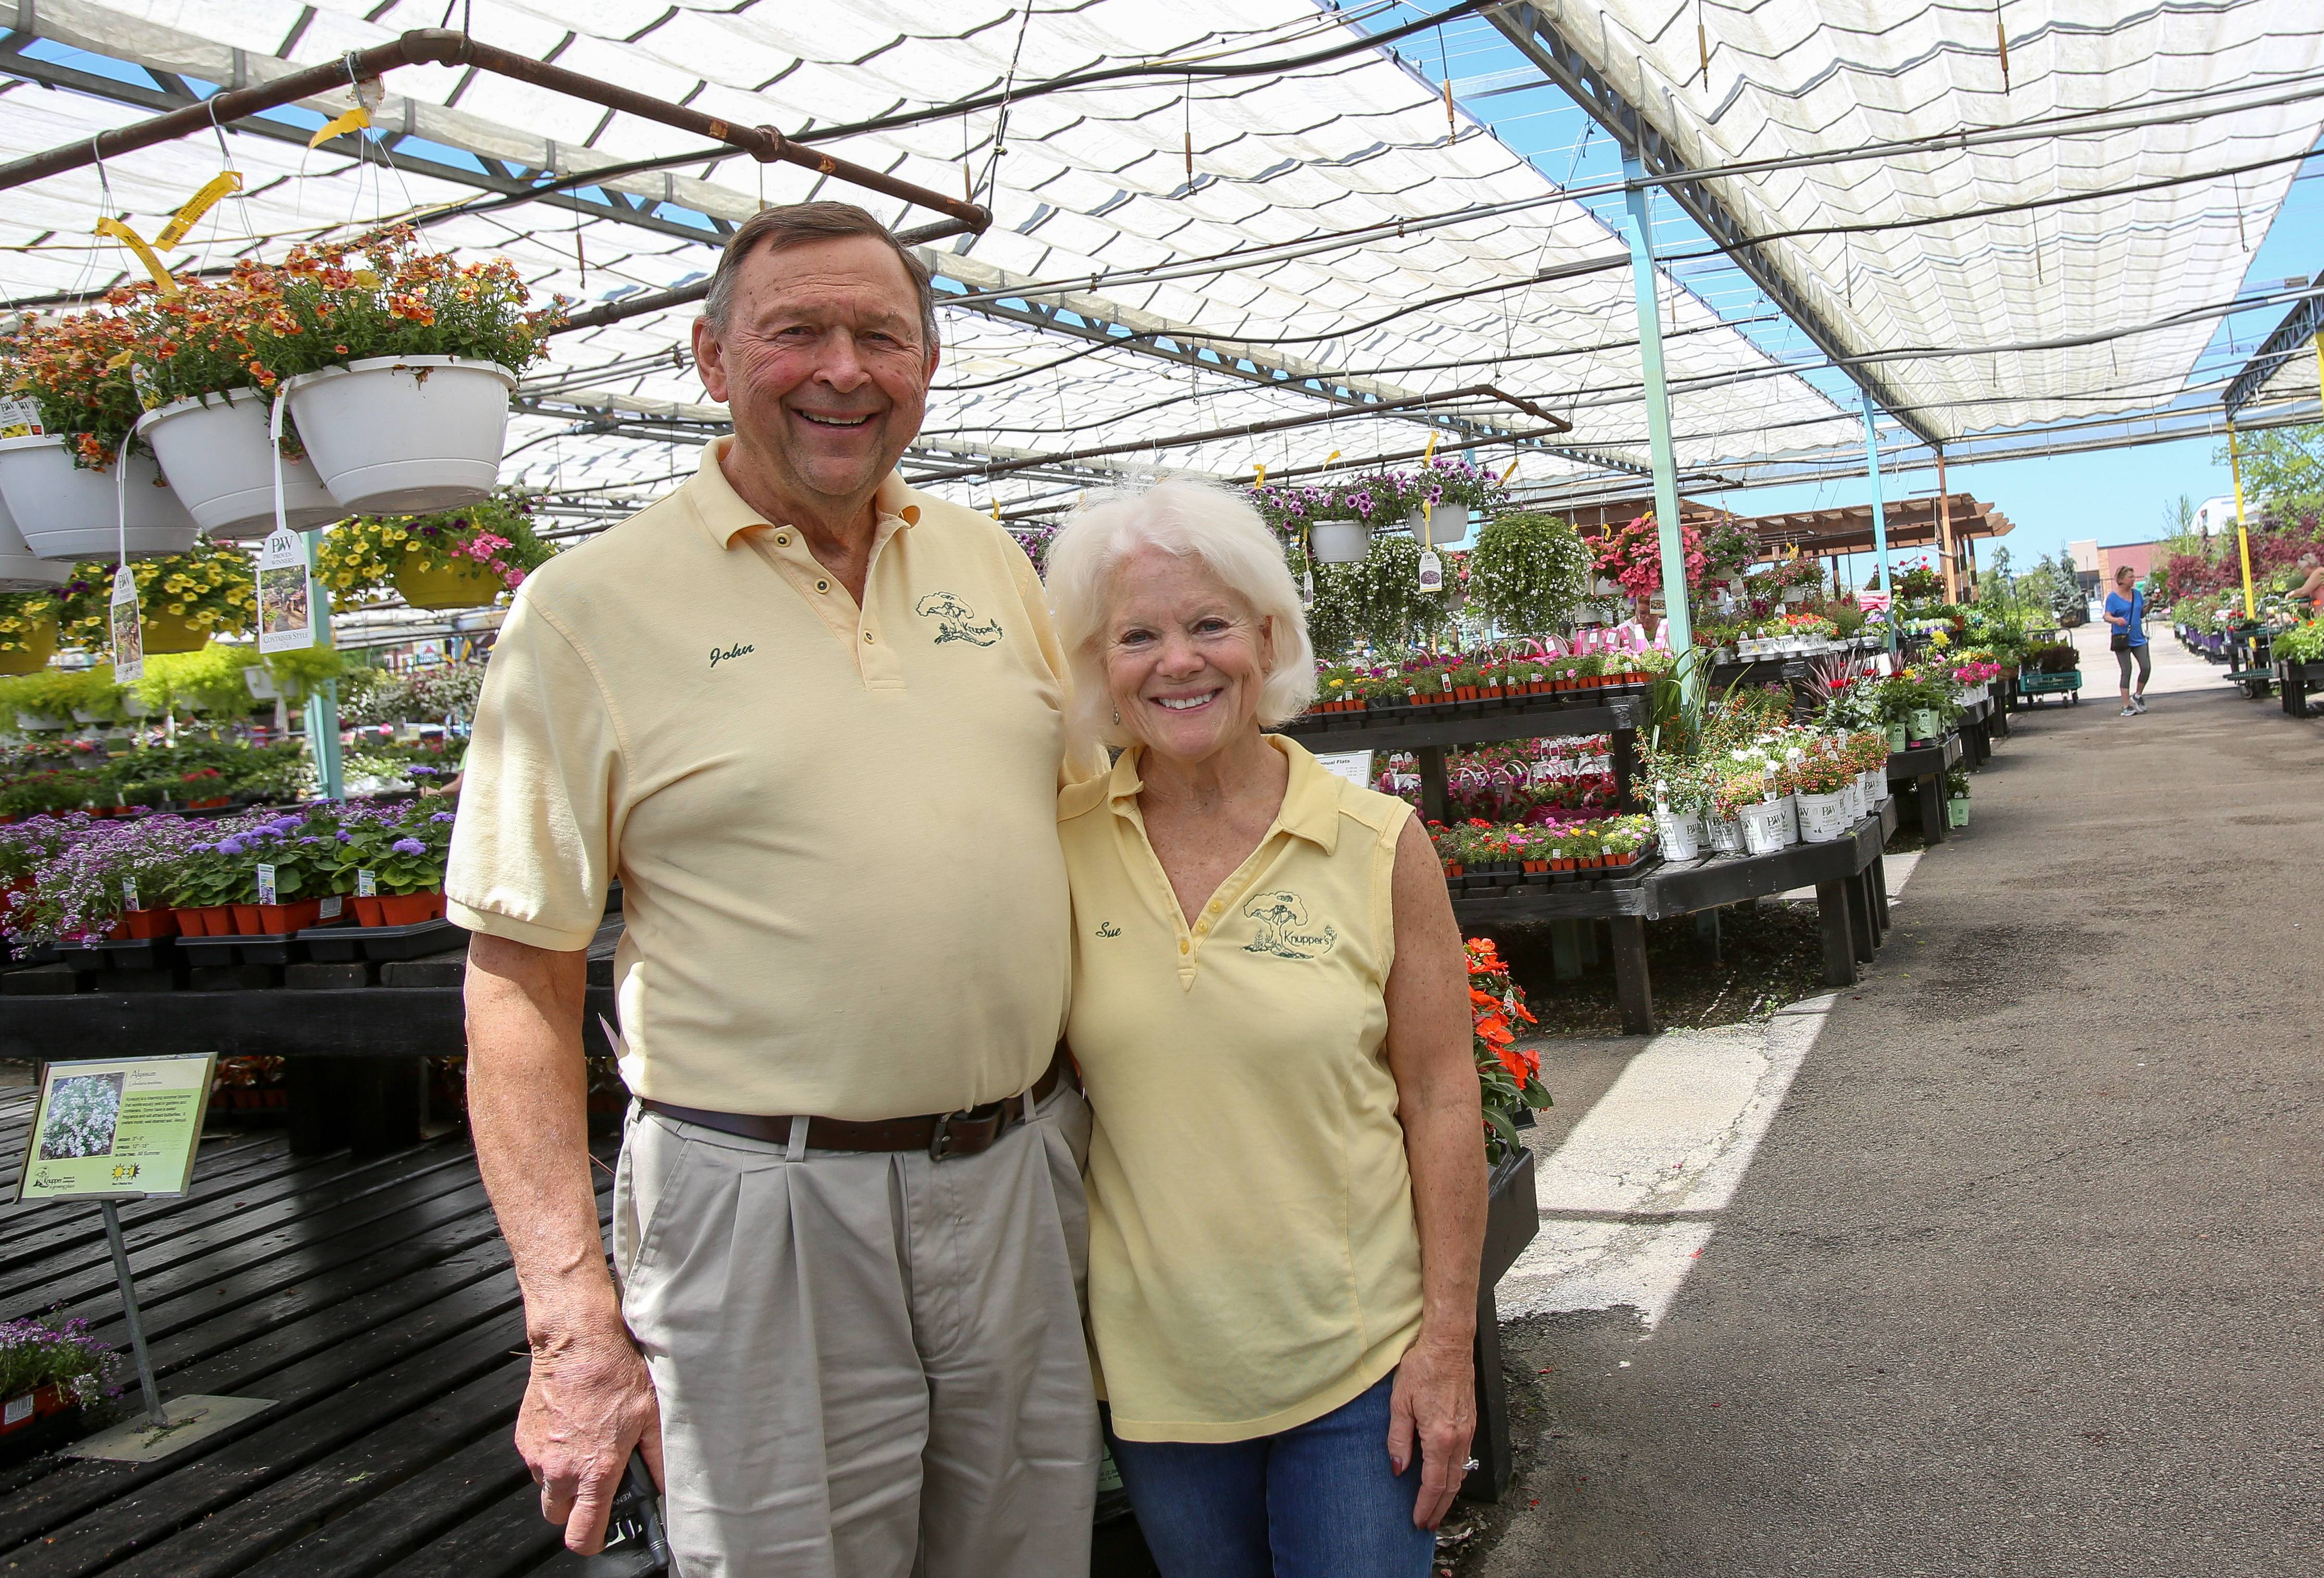 John Heaton, with his wife Sue, has owned Knupper Nursery & Landscape in Palatine since 1968. They are closing the center on June 16 after selling their Rand Road property to an auto dealership.